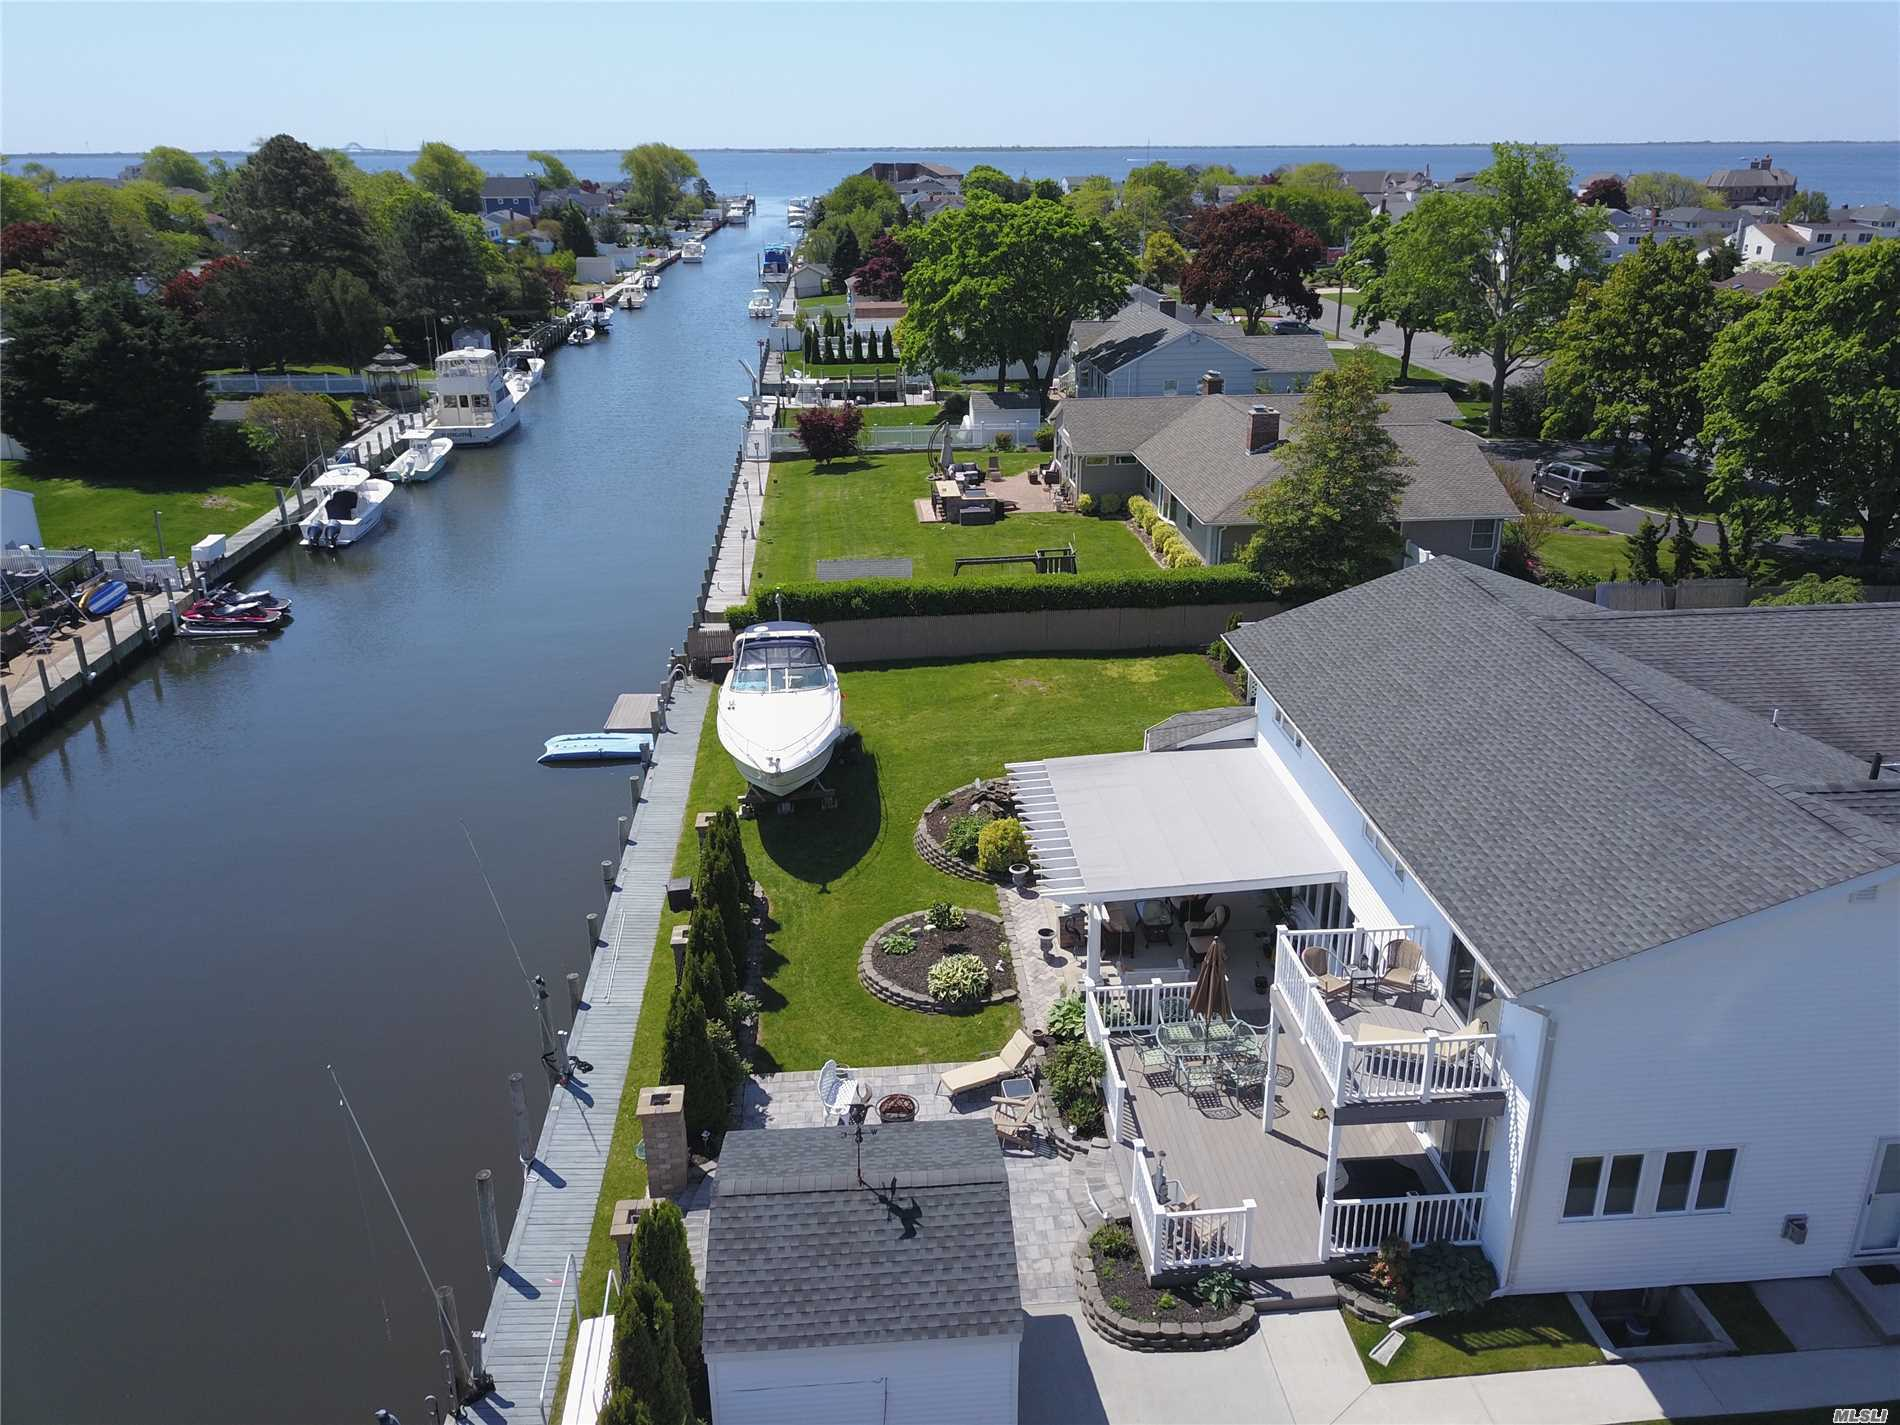 Sensational Waterfront Gem! 112 Feet Bulk Heading On Magnificently Large Property Located In Desired Willetts Point/West Islip School. Home Boasts Updated Kitchen W/Stainless Steel Appliances, & Granite Counters Open Concept W/Large Dining Rm, & Formal Living Rm. Den W/Gas Fireplace, Mud Rm, Laundry, 2 Car Garage W/Rm For Storage. Master Suite W/Wic & En Suite. Separate Quarters For Nanny Or Grandma . 2nd Floor Includes 4 Brs, Foyer, 2 F Baths & Great Rm/Media Rm. Must See!